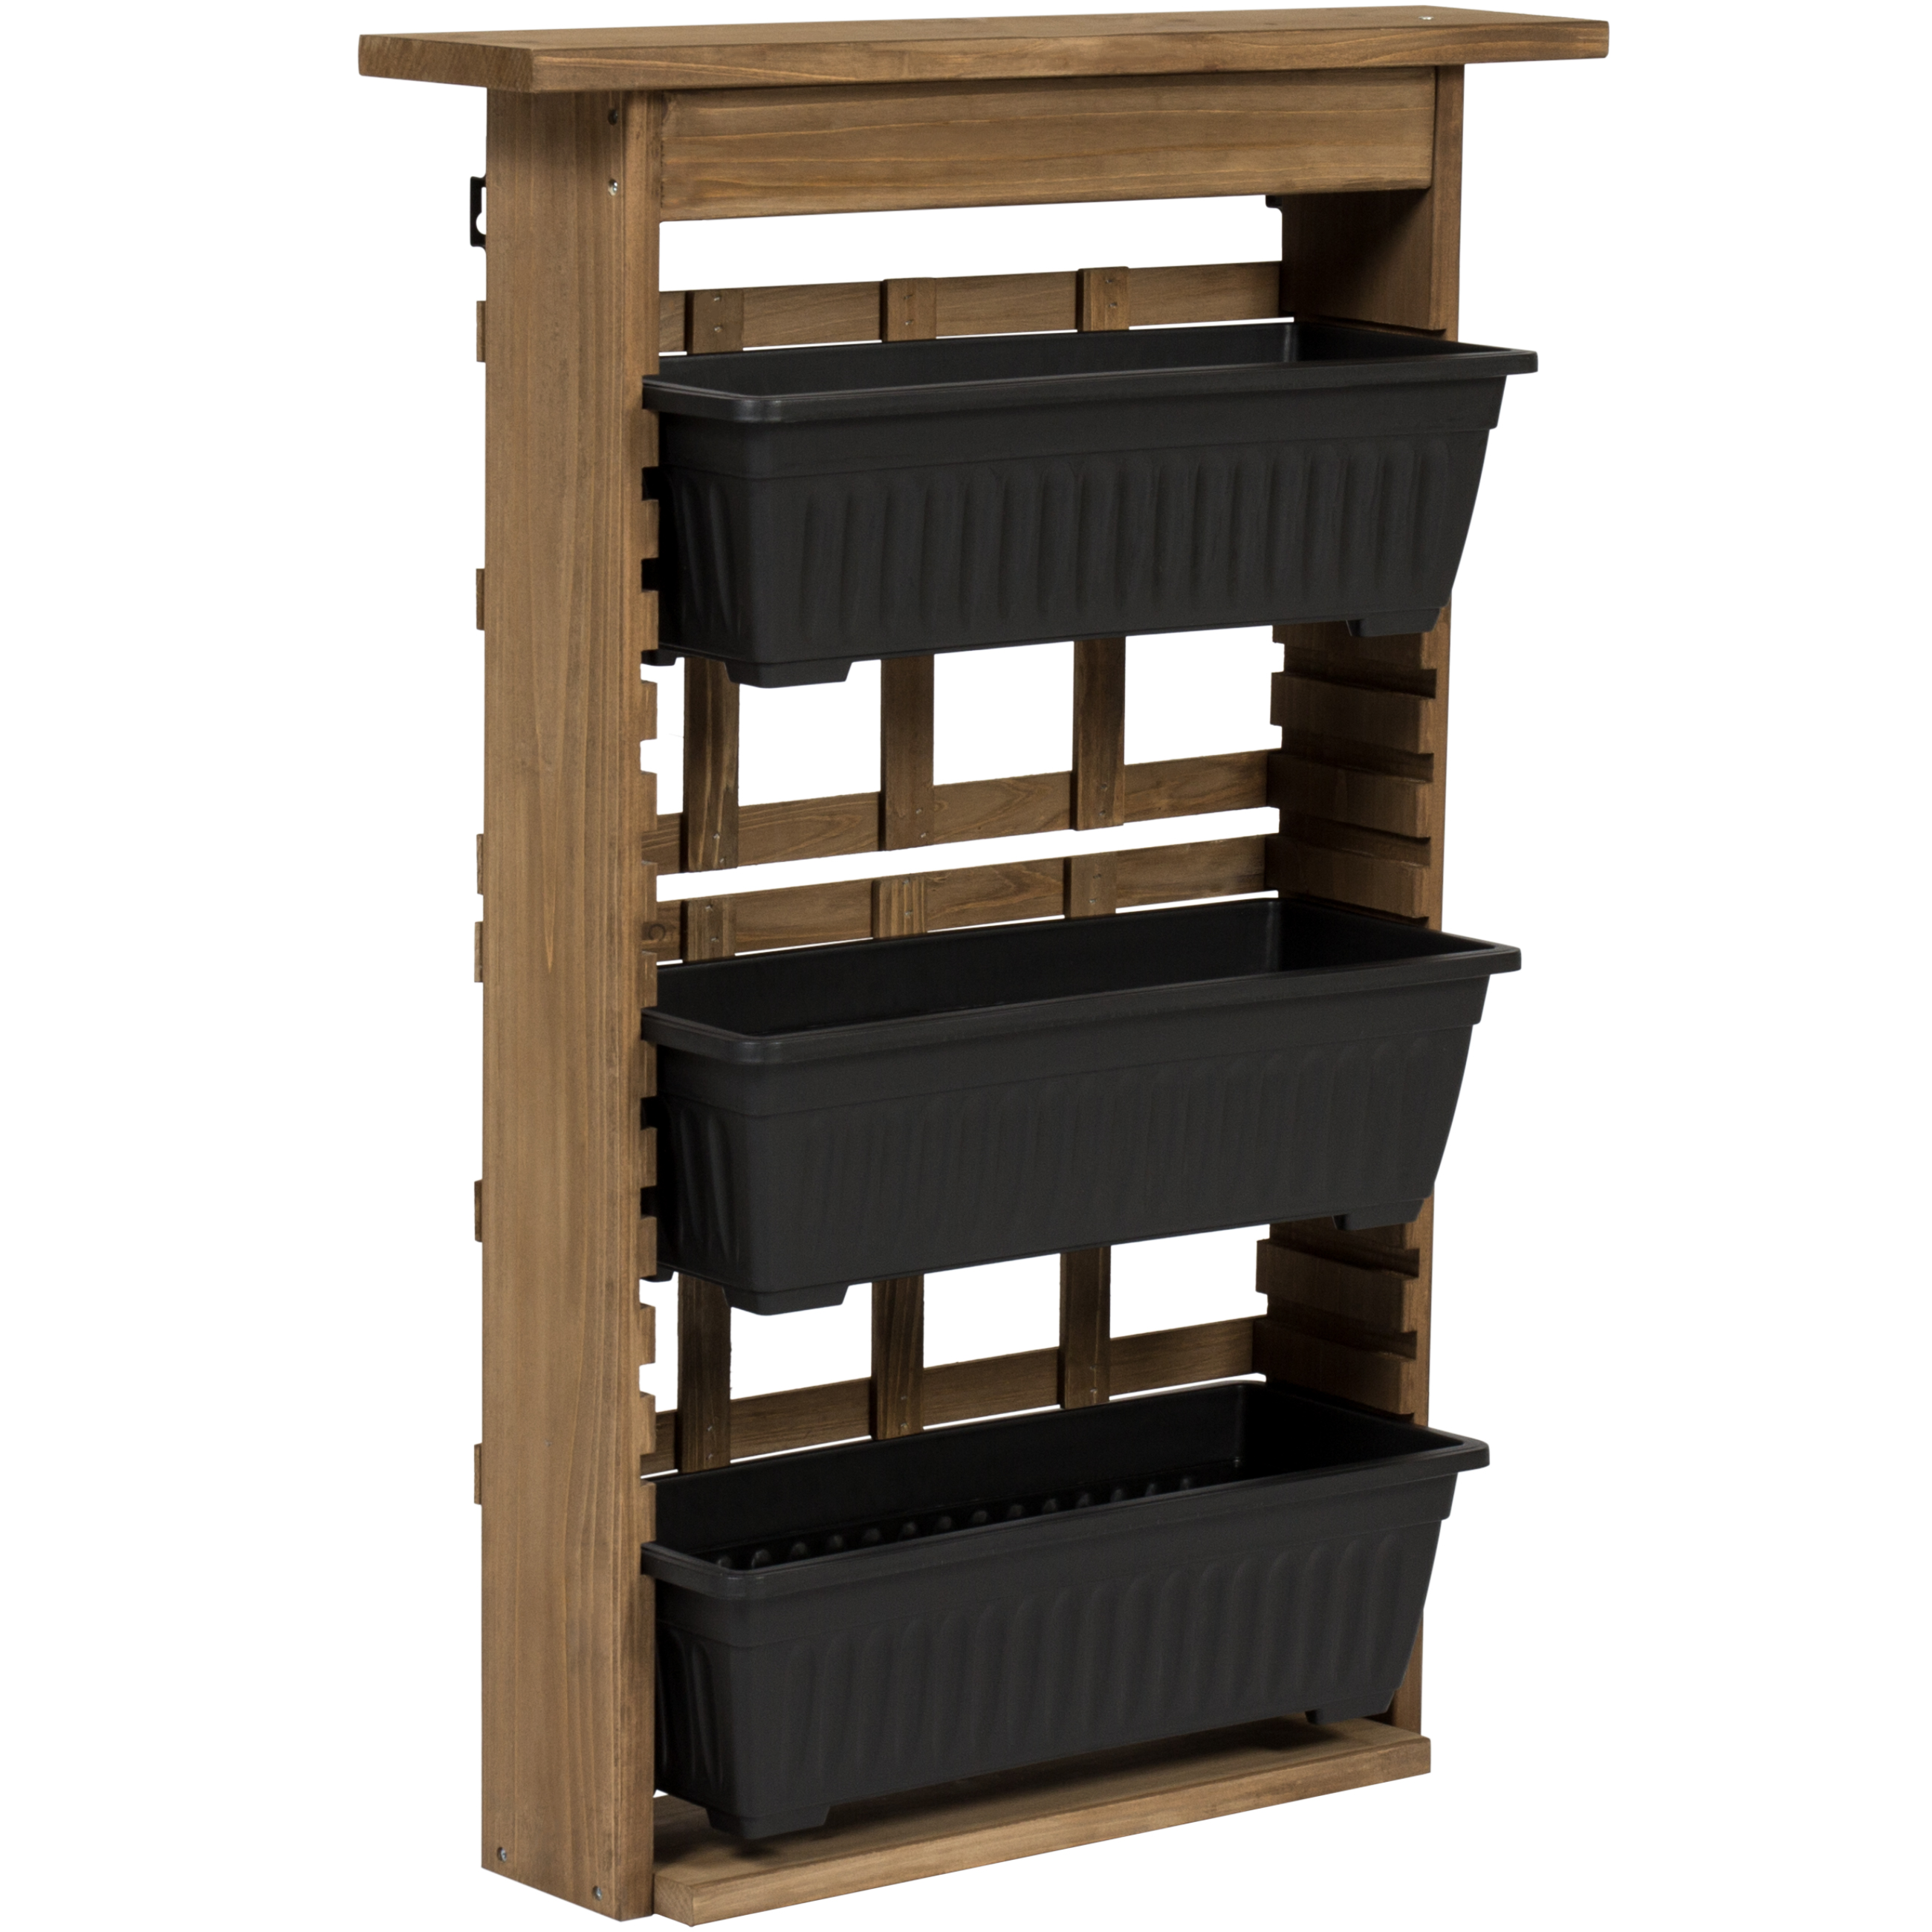 Best Choice Products Outdoor Rustic Wooden Garden Vertical Wall Mount 3-Tier Planter by Best Choice Products